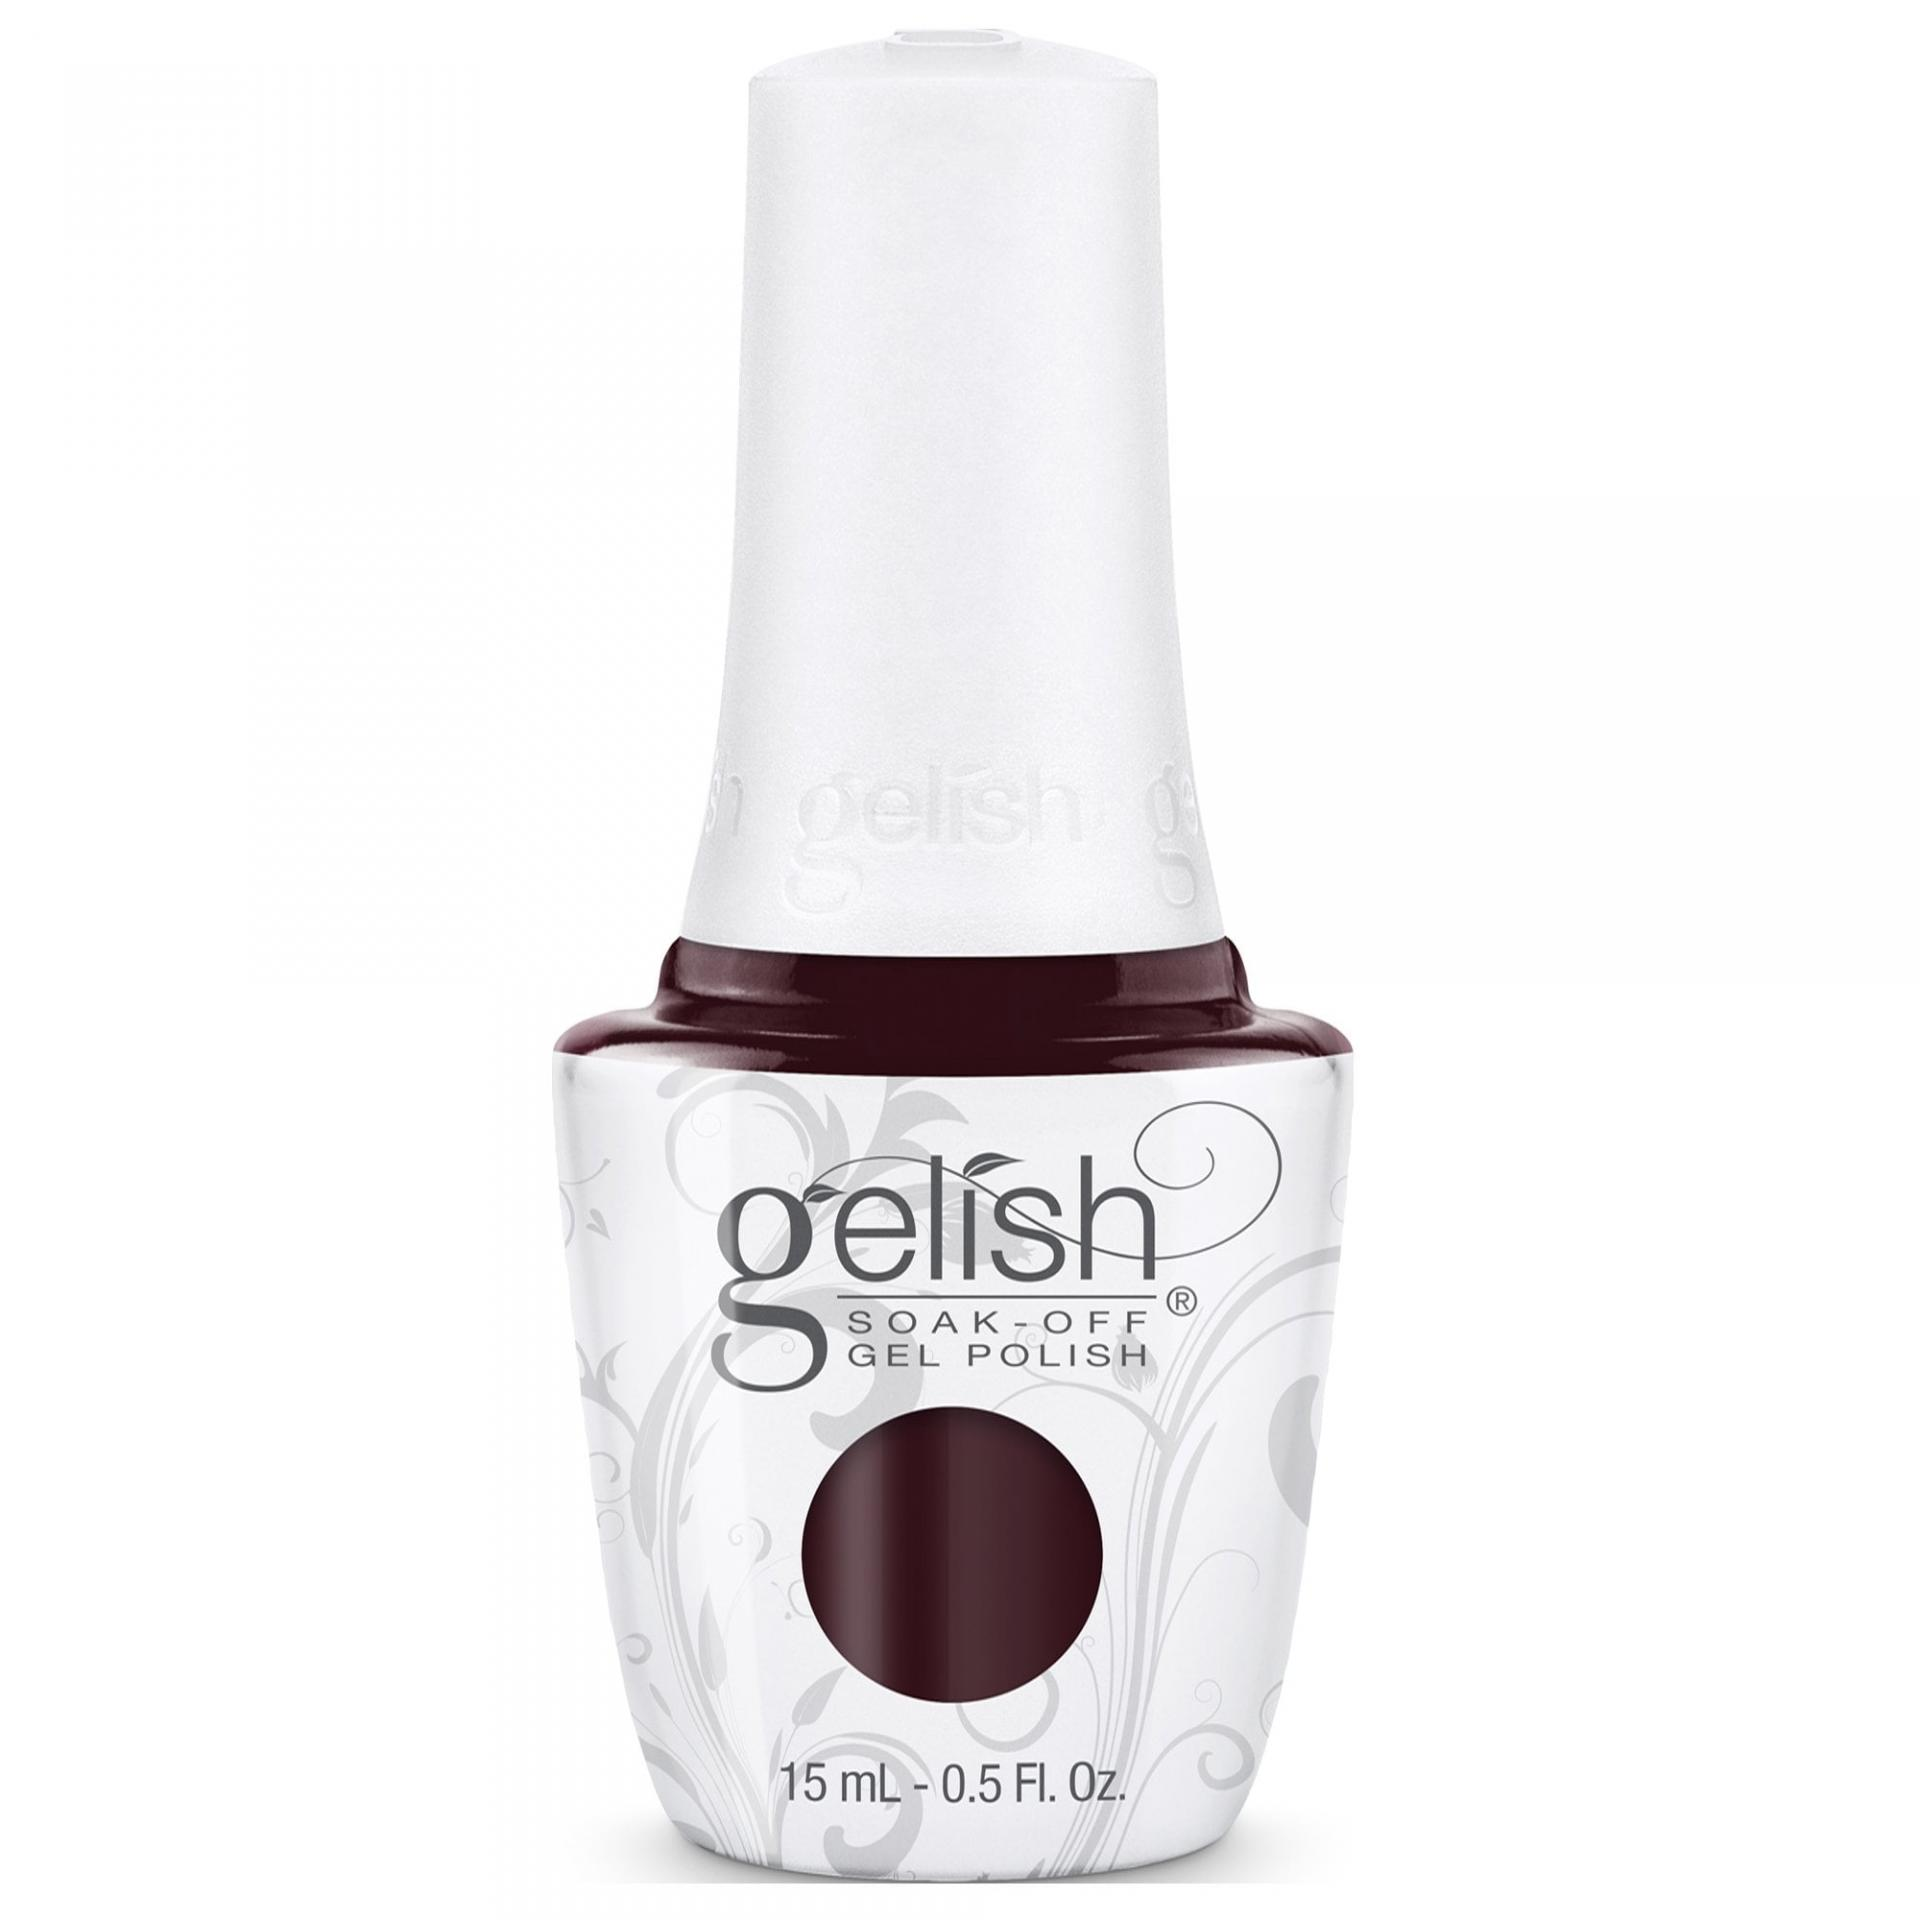 Gelish forever fabulous 2018 gel polish collection the camera loves me 15ml 1110328 p25755 100388 zoom